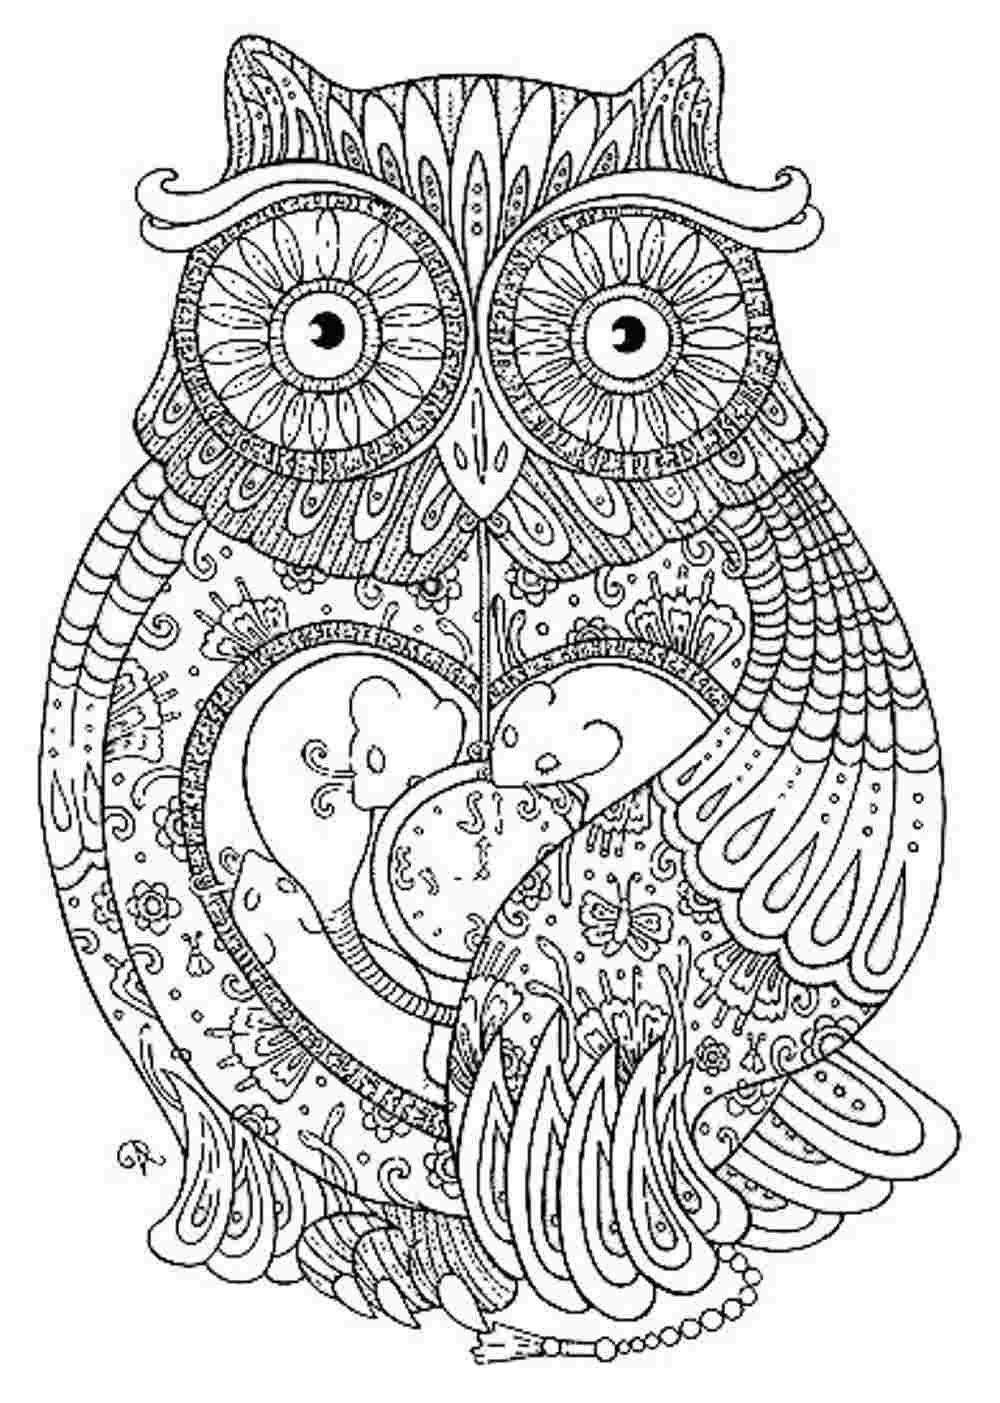 1000x1403 Animal Mandala Coloring Pages To Download And Print For Free